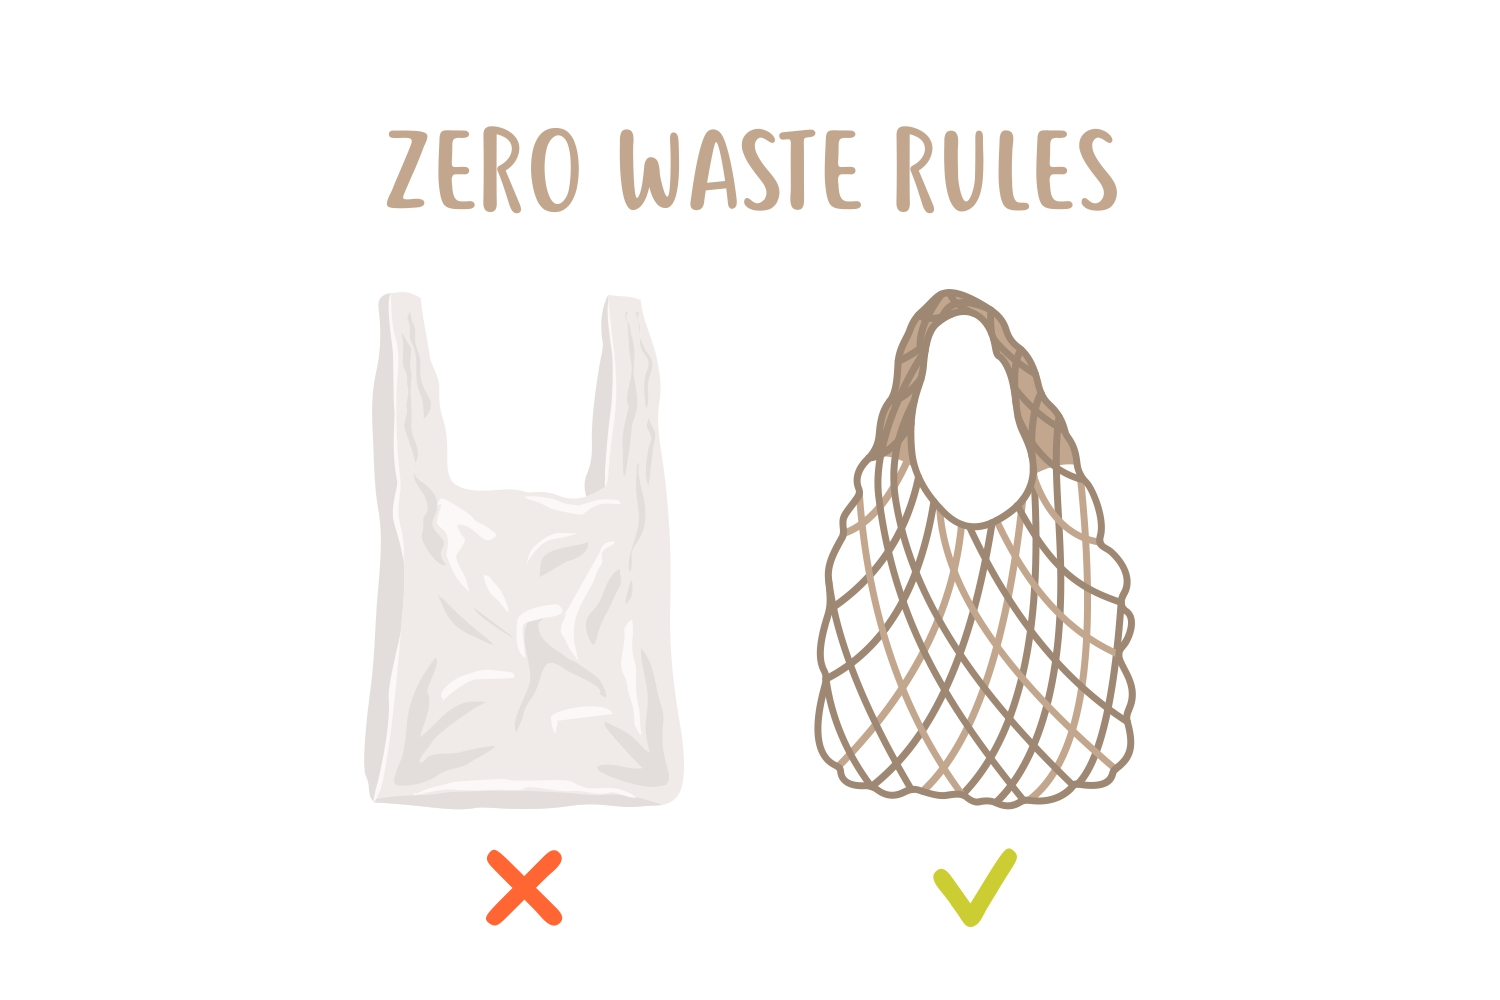 Zero waste rules example image 3